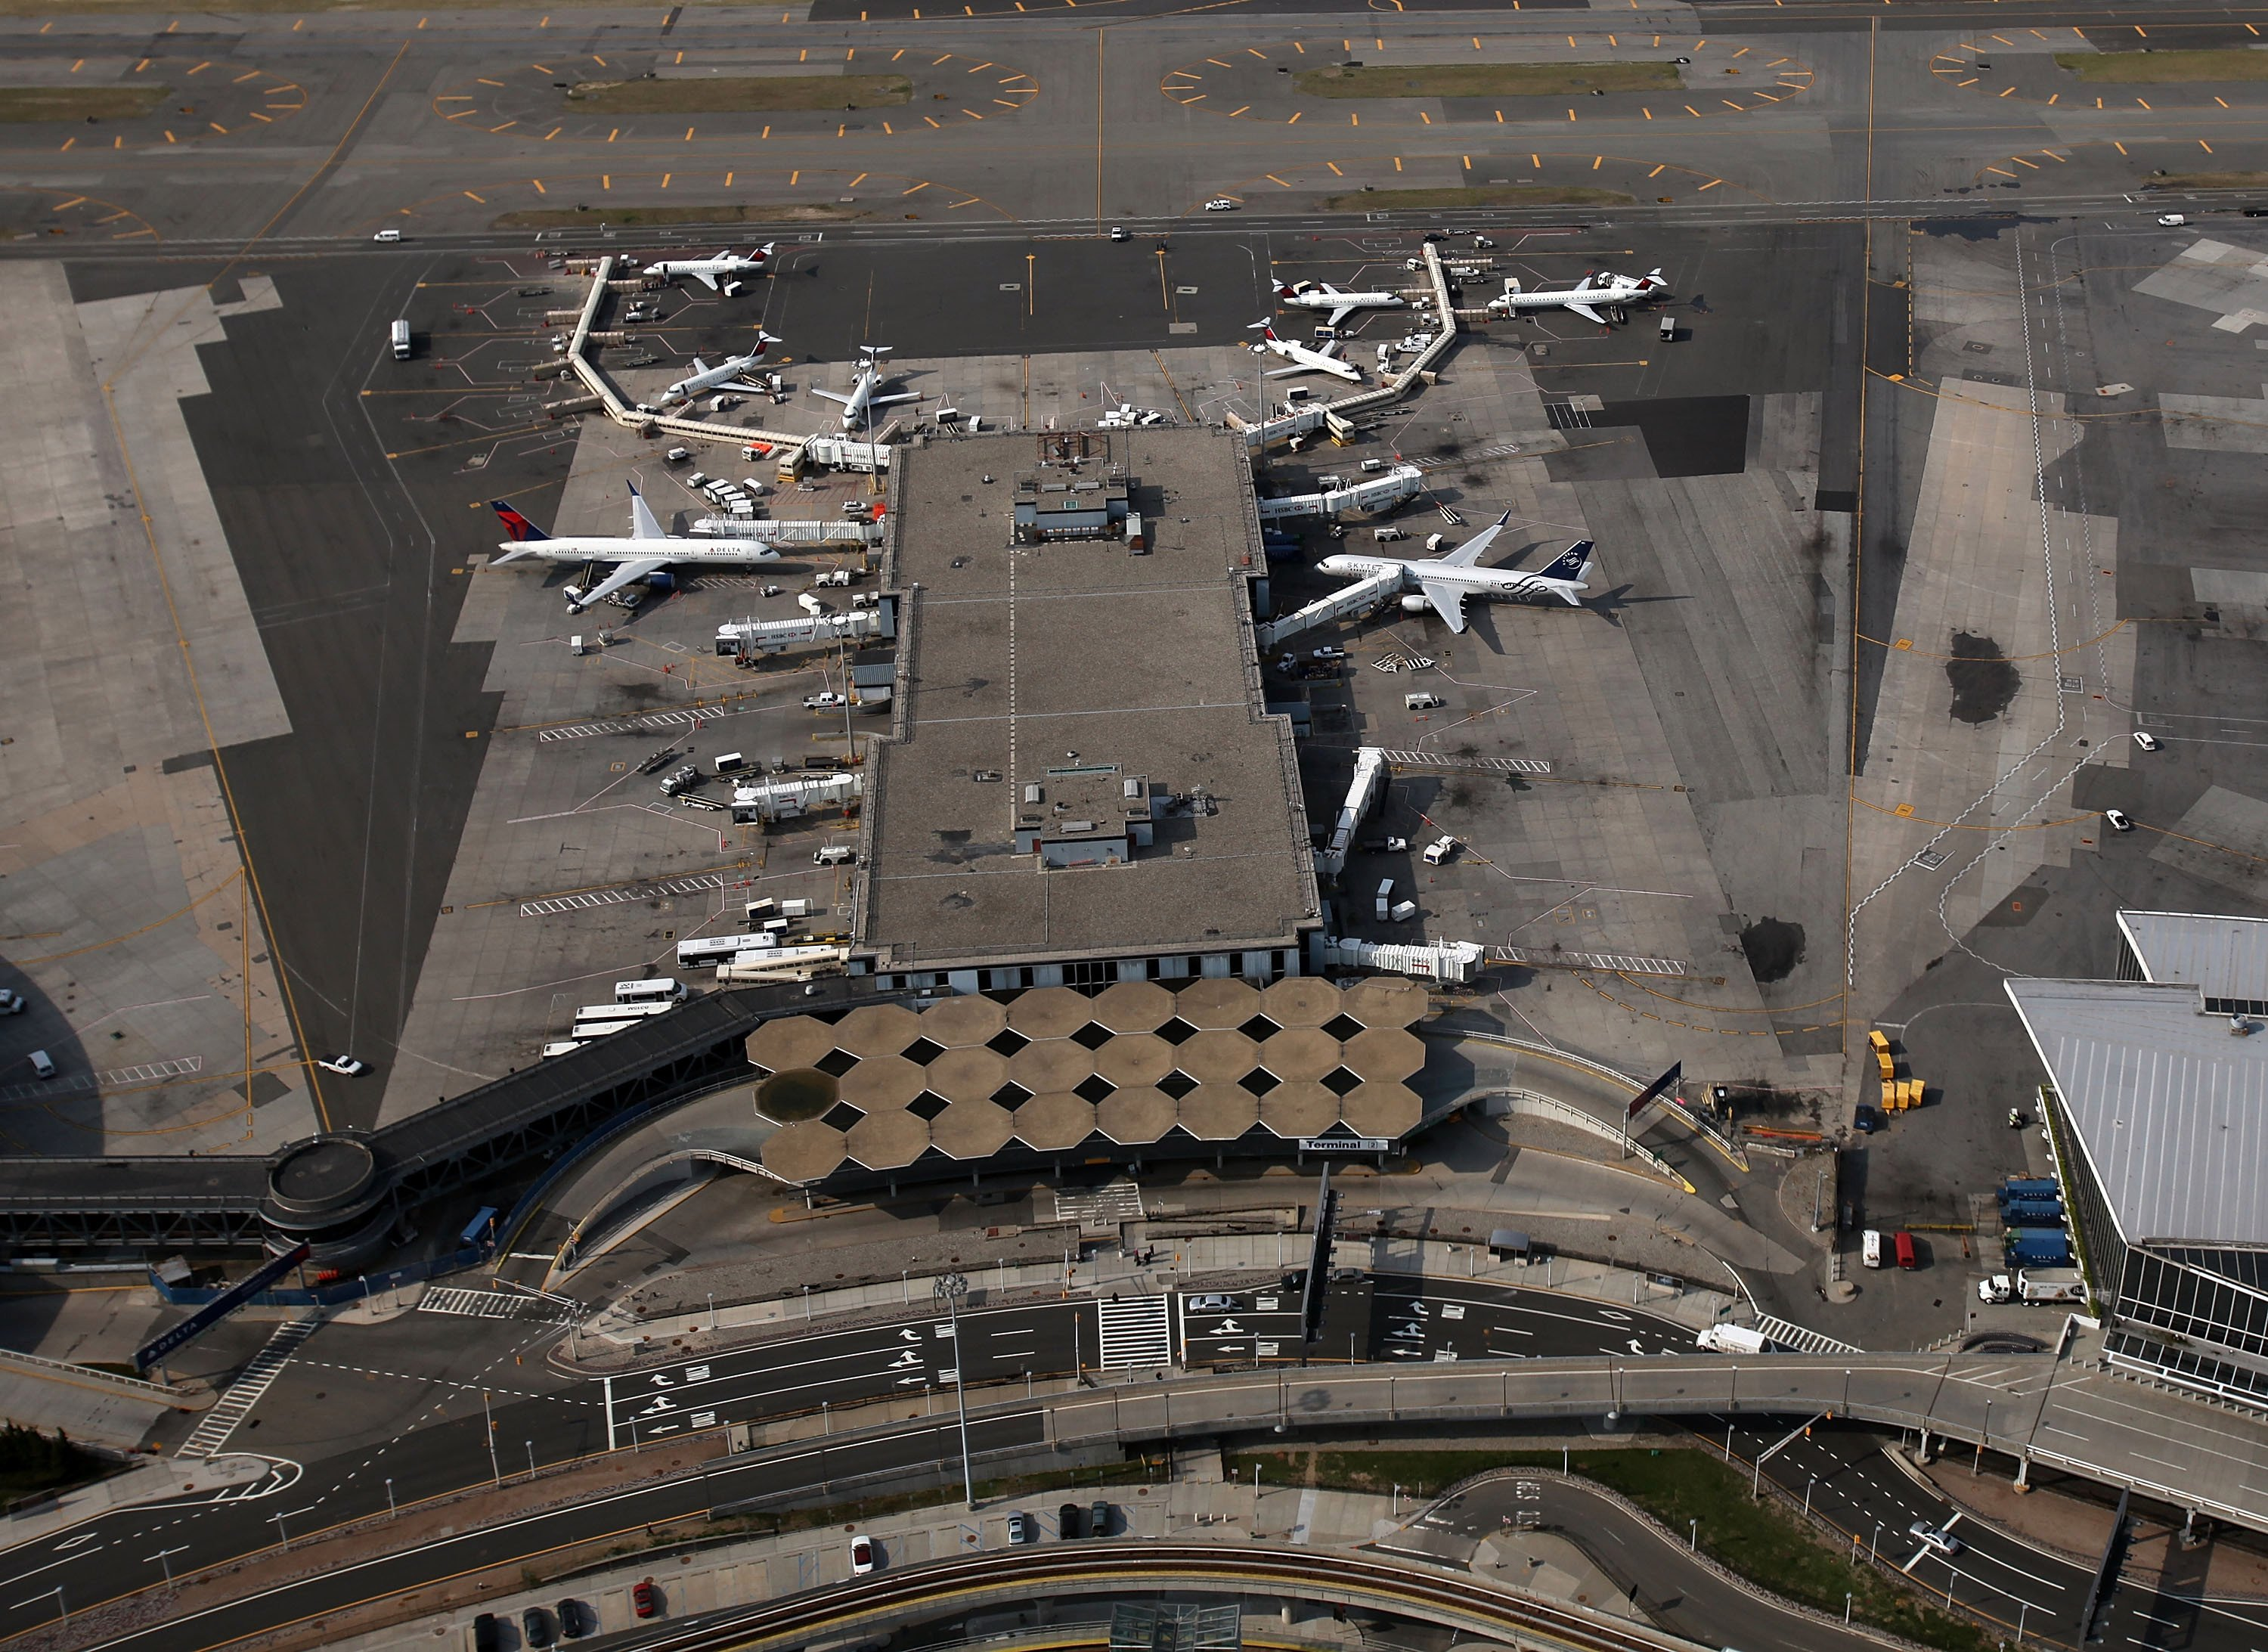 Flight chaos across America as major airports including JFK, La Guardia and Florida CLOSE over government shut down